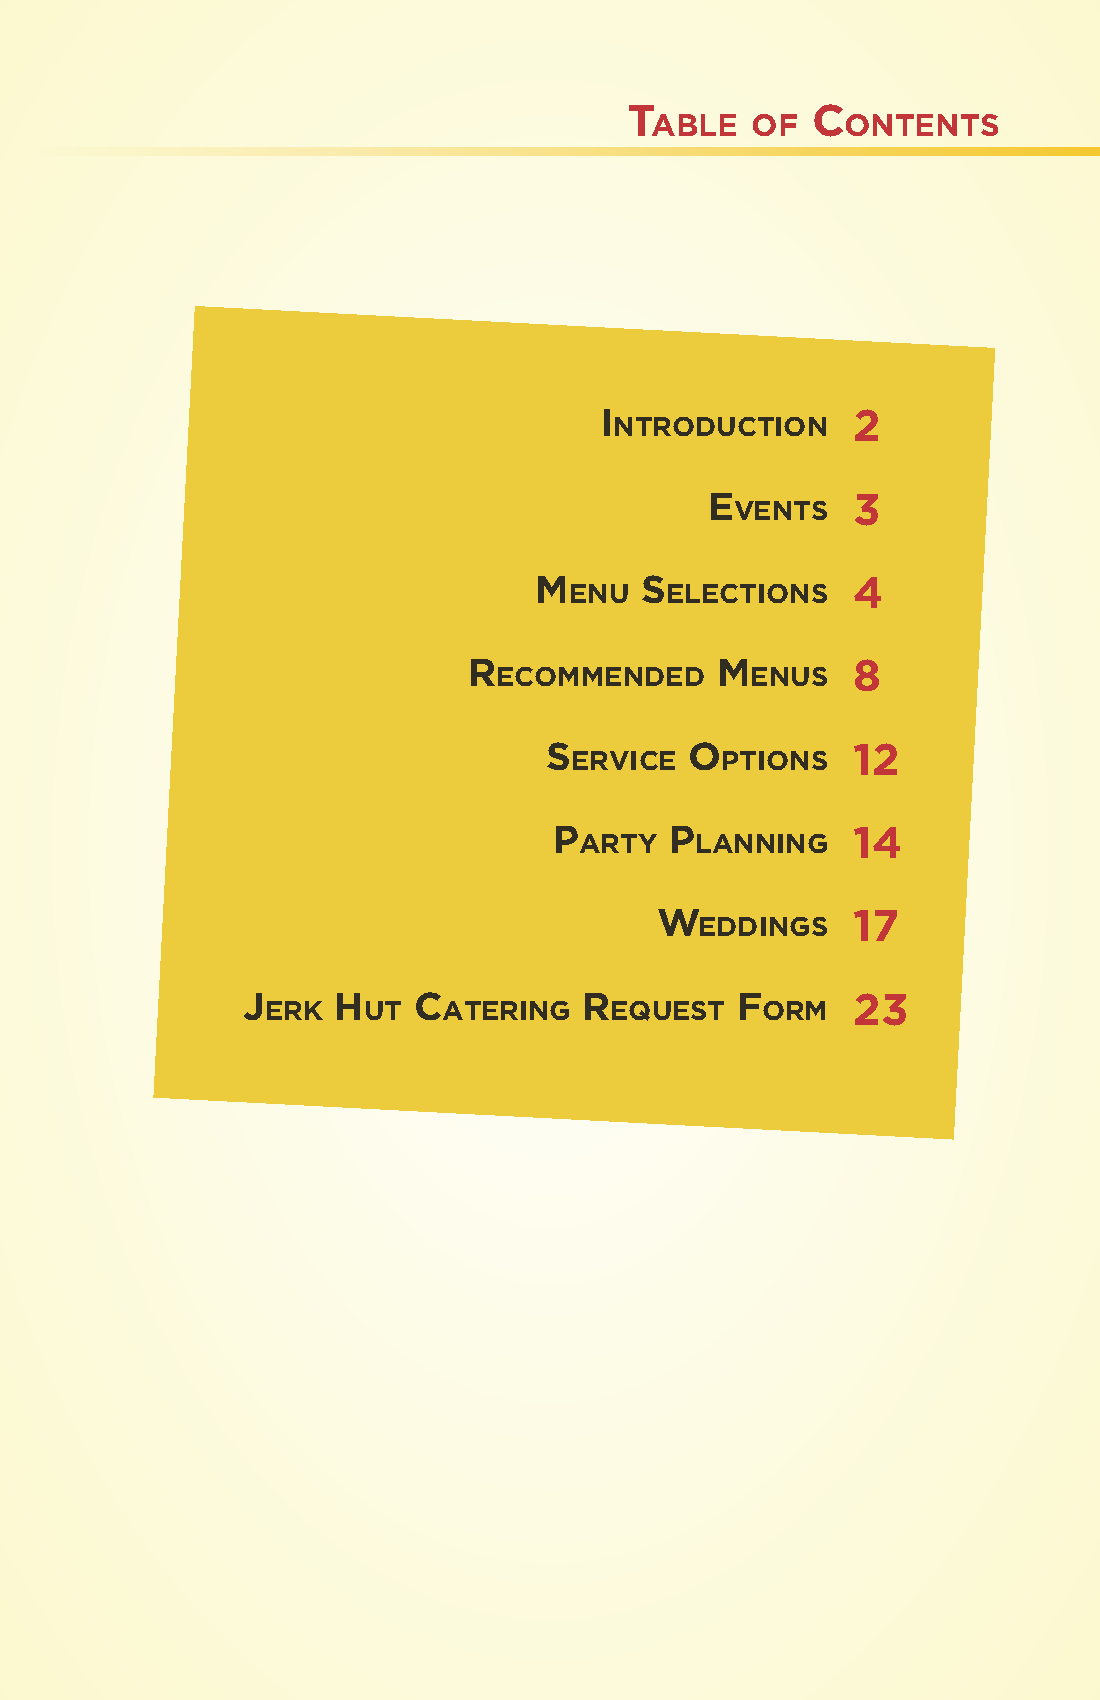 JHCatering_booklet2012-nvpg_NEW_6_15_15_Page_03.png